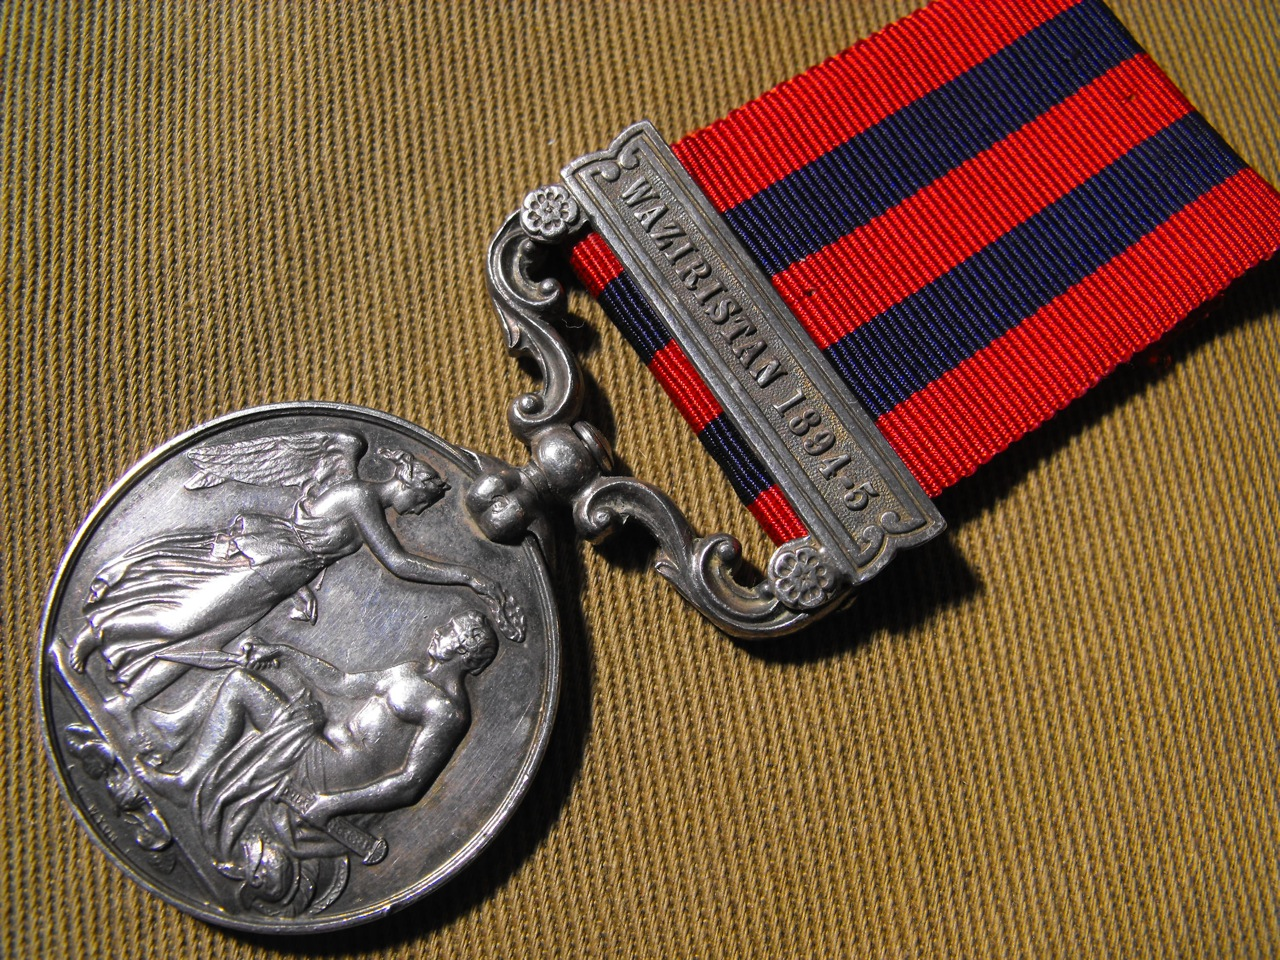 1854 India General Service Medal